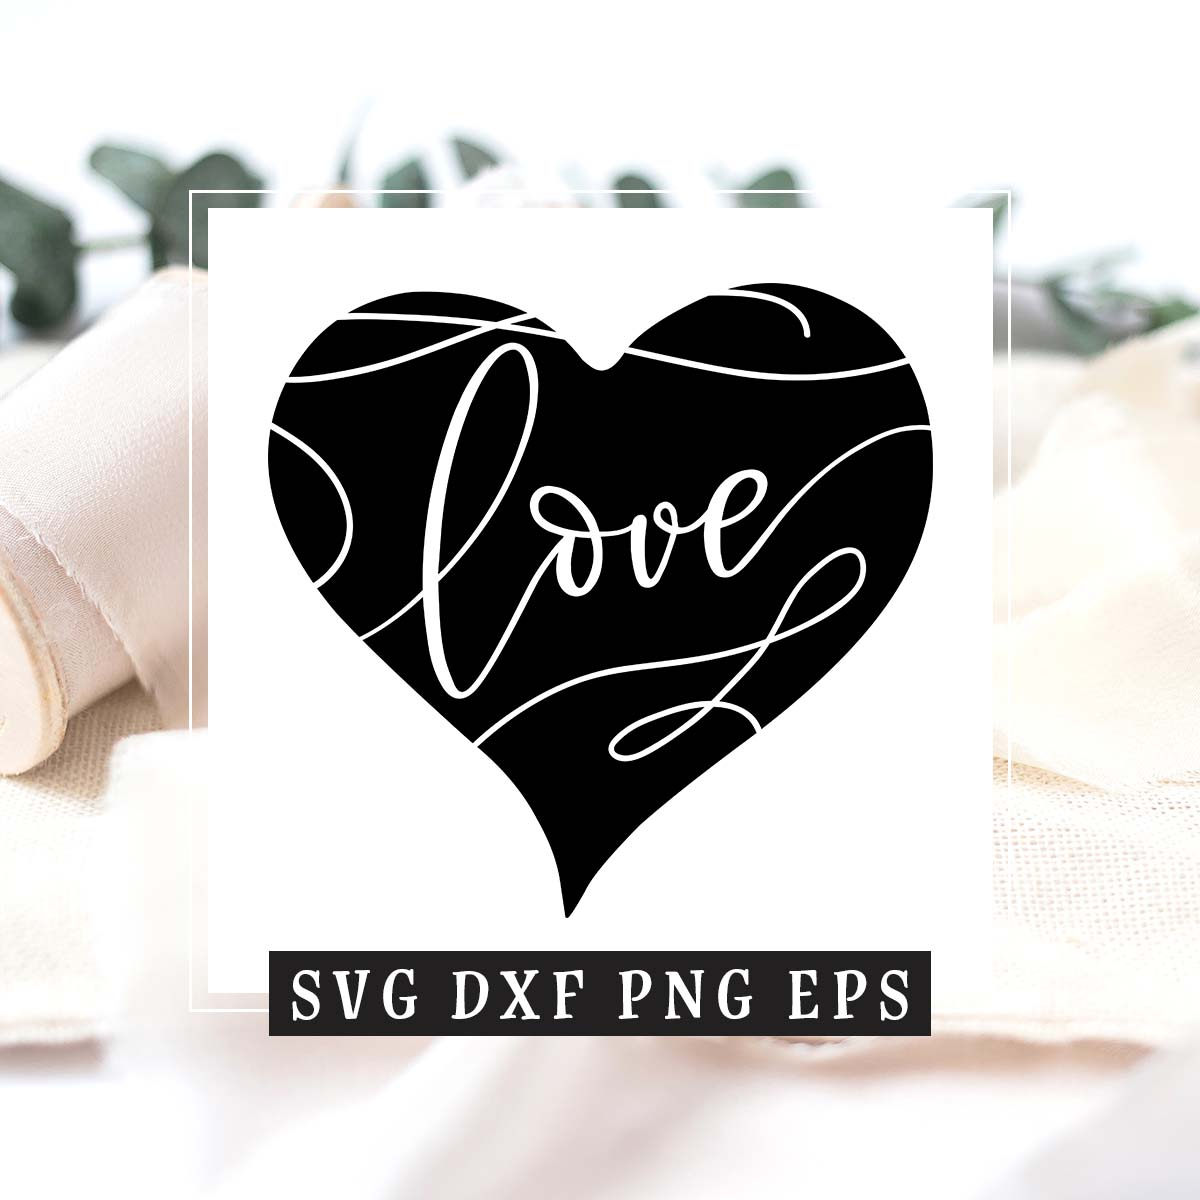 Love & Heart SVG DXF PNG EPS example image 2